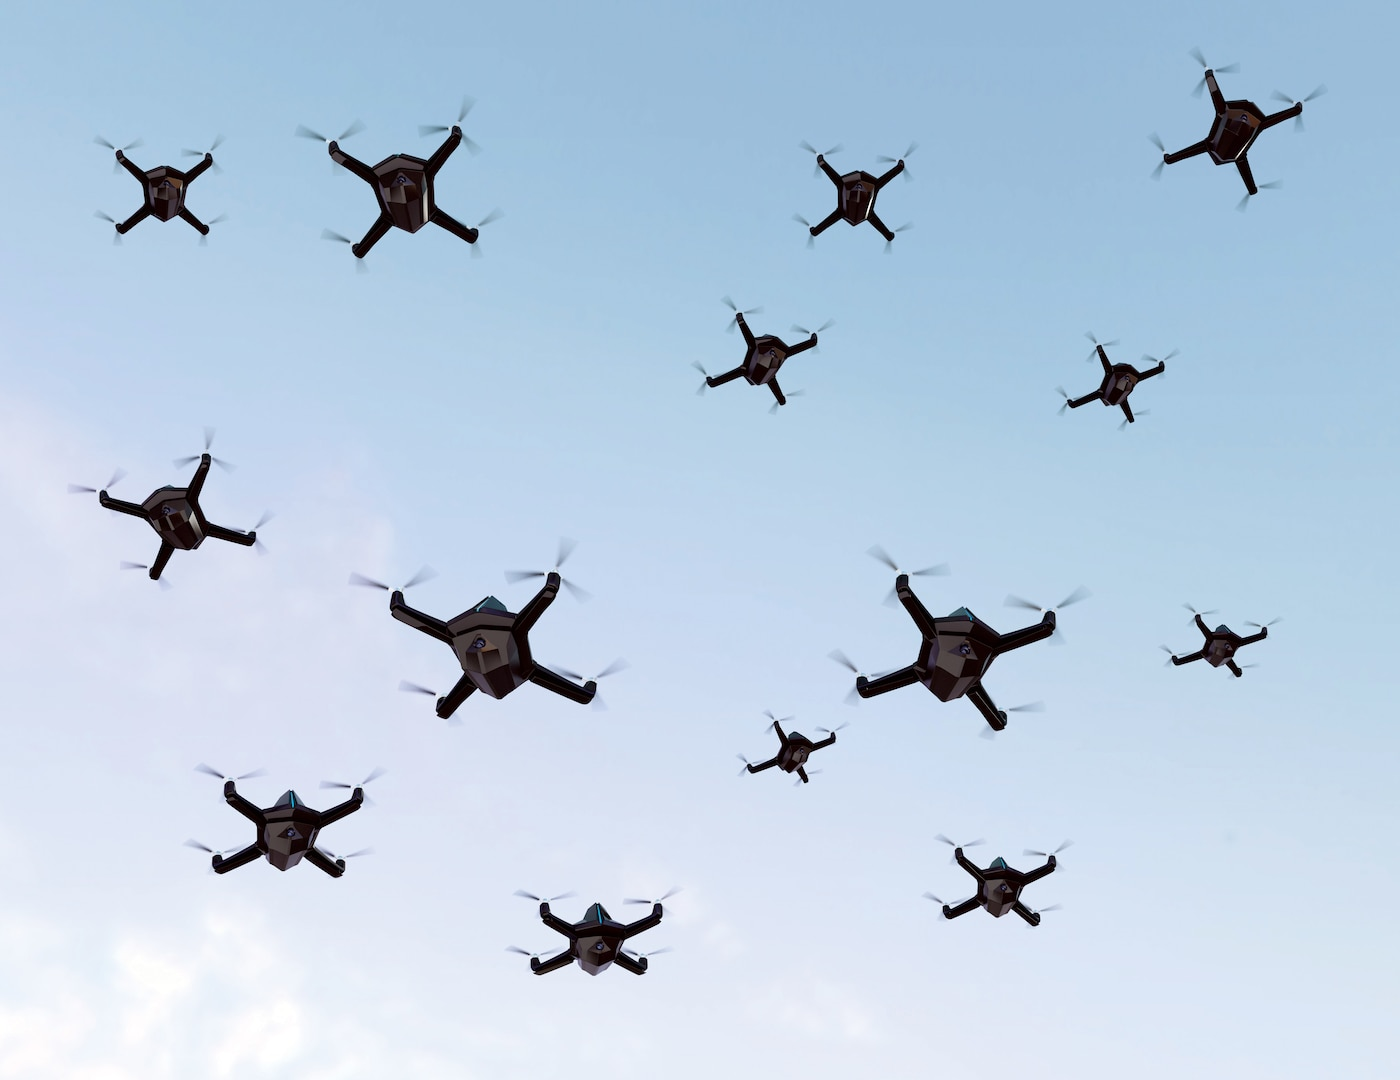 Swarm of security drones with surveillance camera flying in the sky. 3D rendering image.